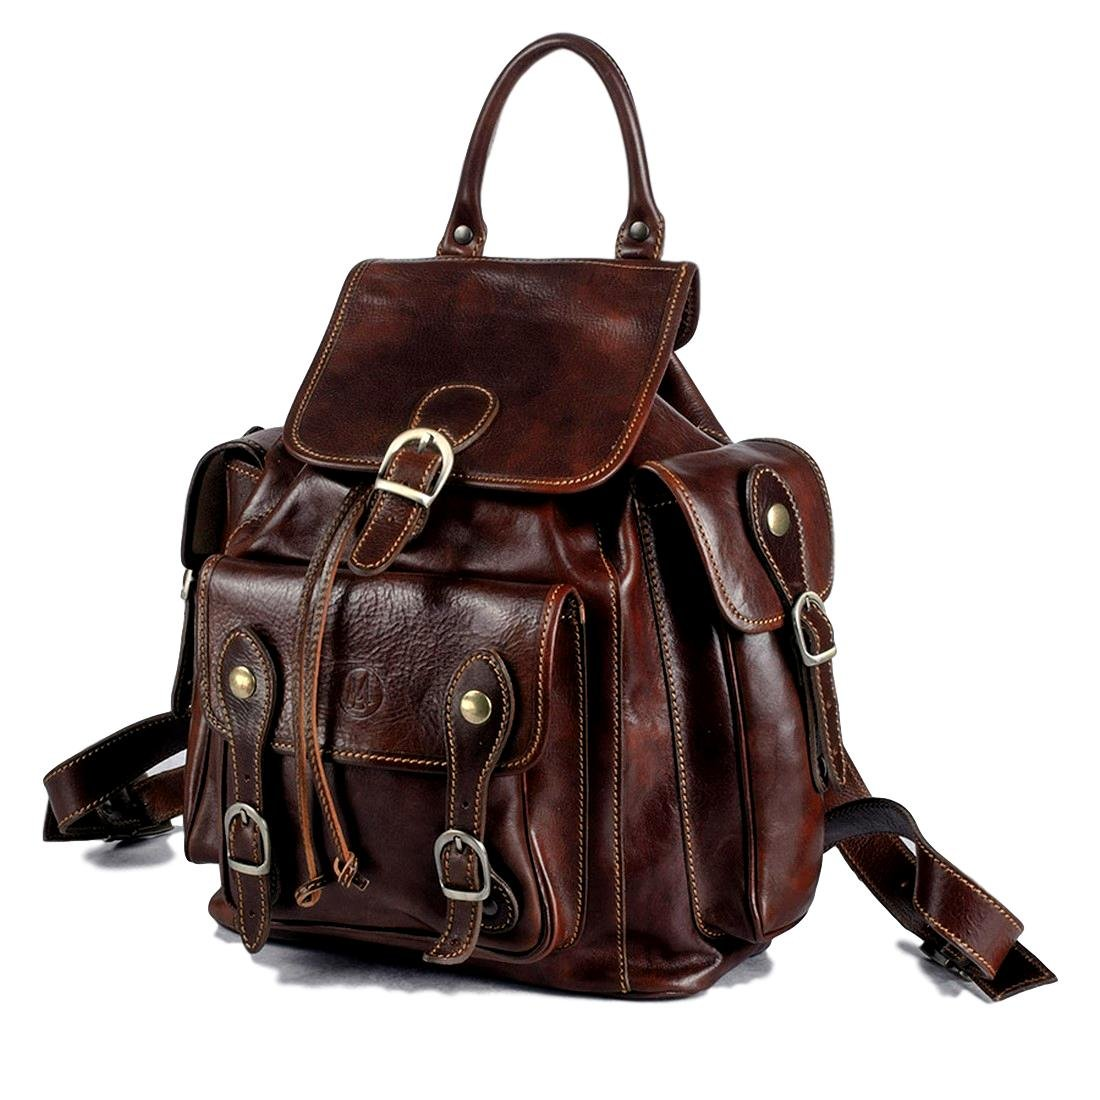 Michelangelo Genuine Leather Calf-Skin Italy Overland Backpack Leather 35x25 H40 cm